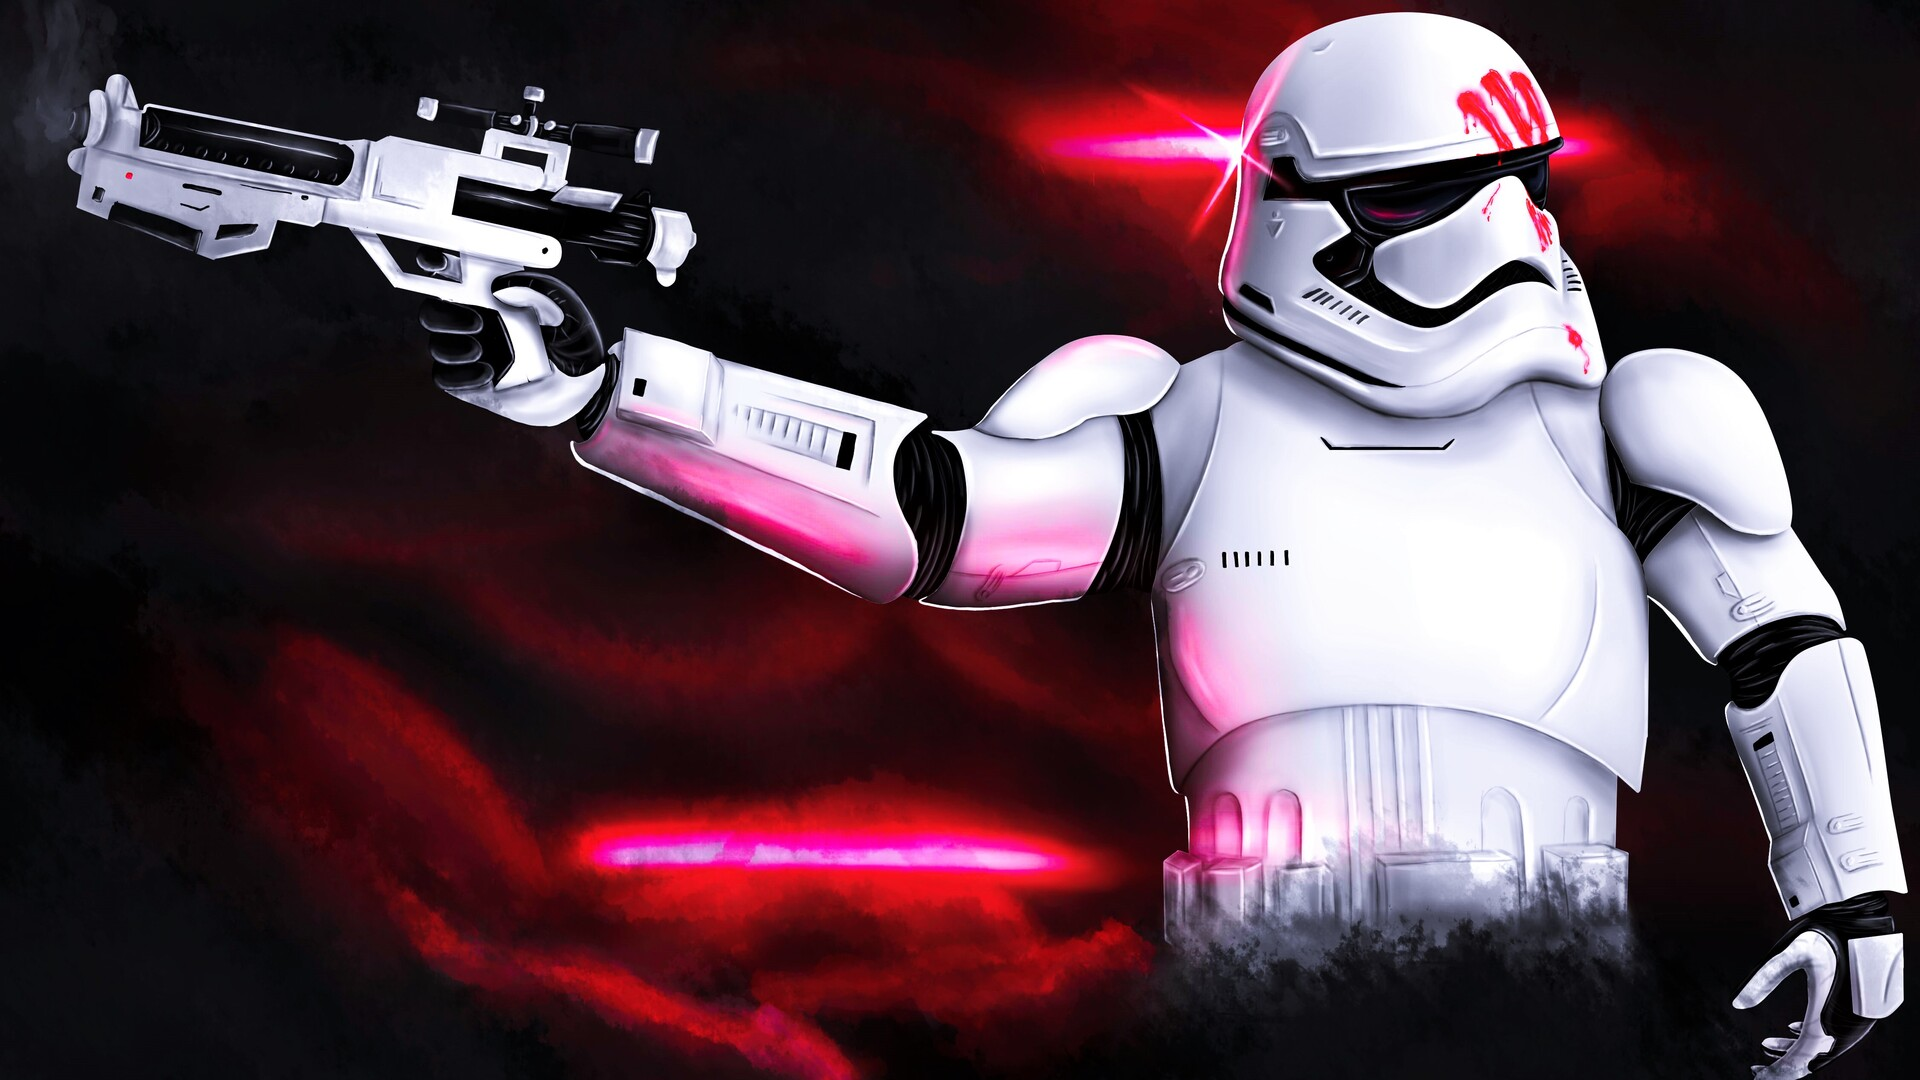 1920x1080 Clone Trooper Star Wars 4k Laptop Full Hd 1080p Hd 4k Wallpapers Images Backgrounds Photos And Pictures